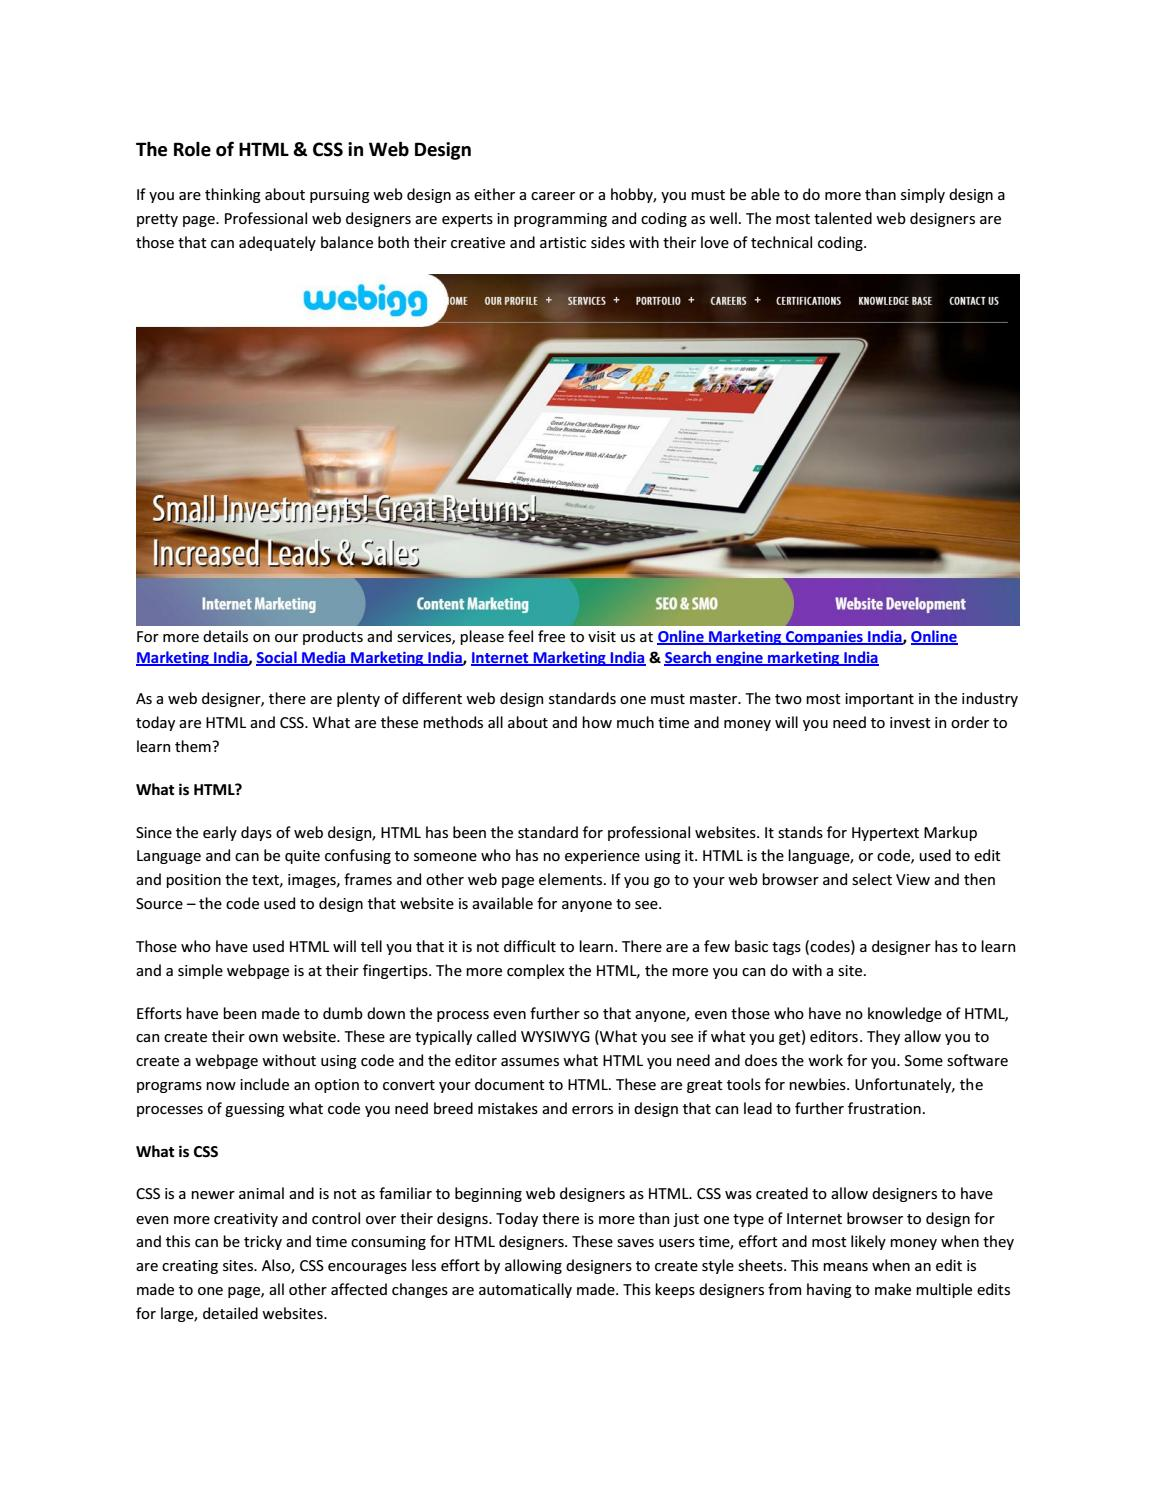 The Role Of Html Css In Web Design By Online Marketing Company Issuu